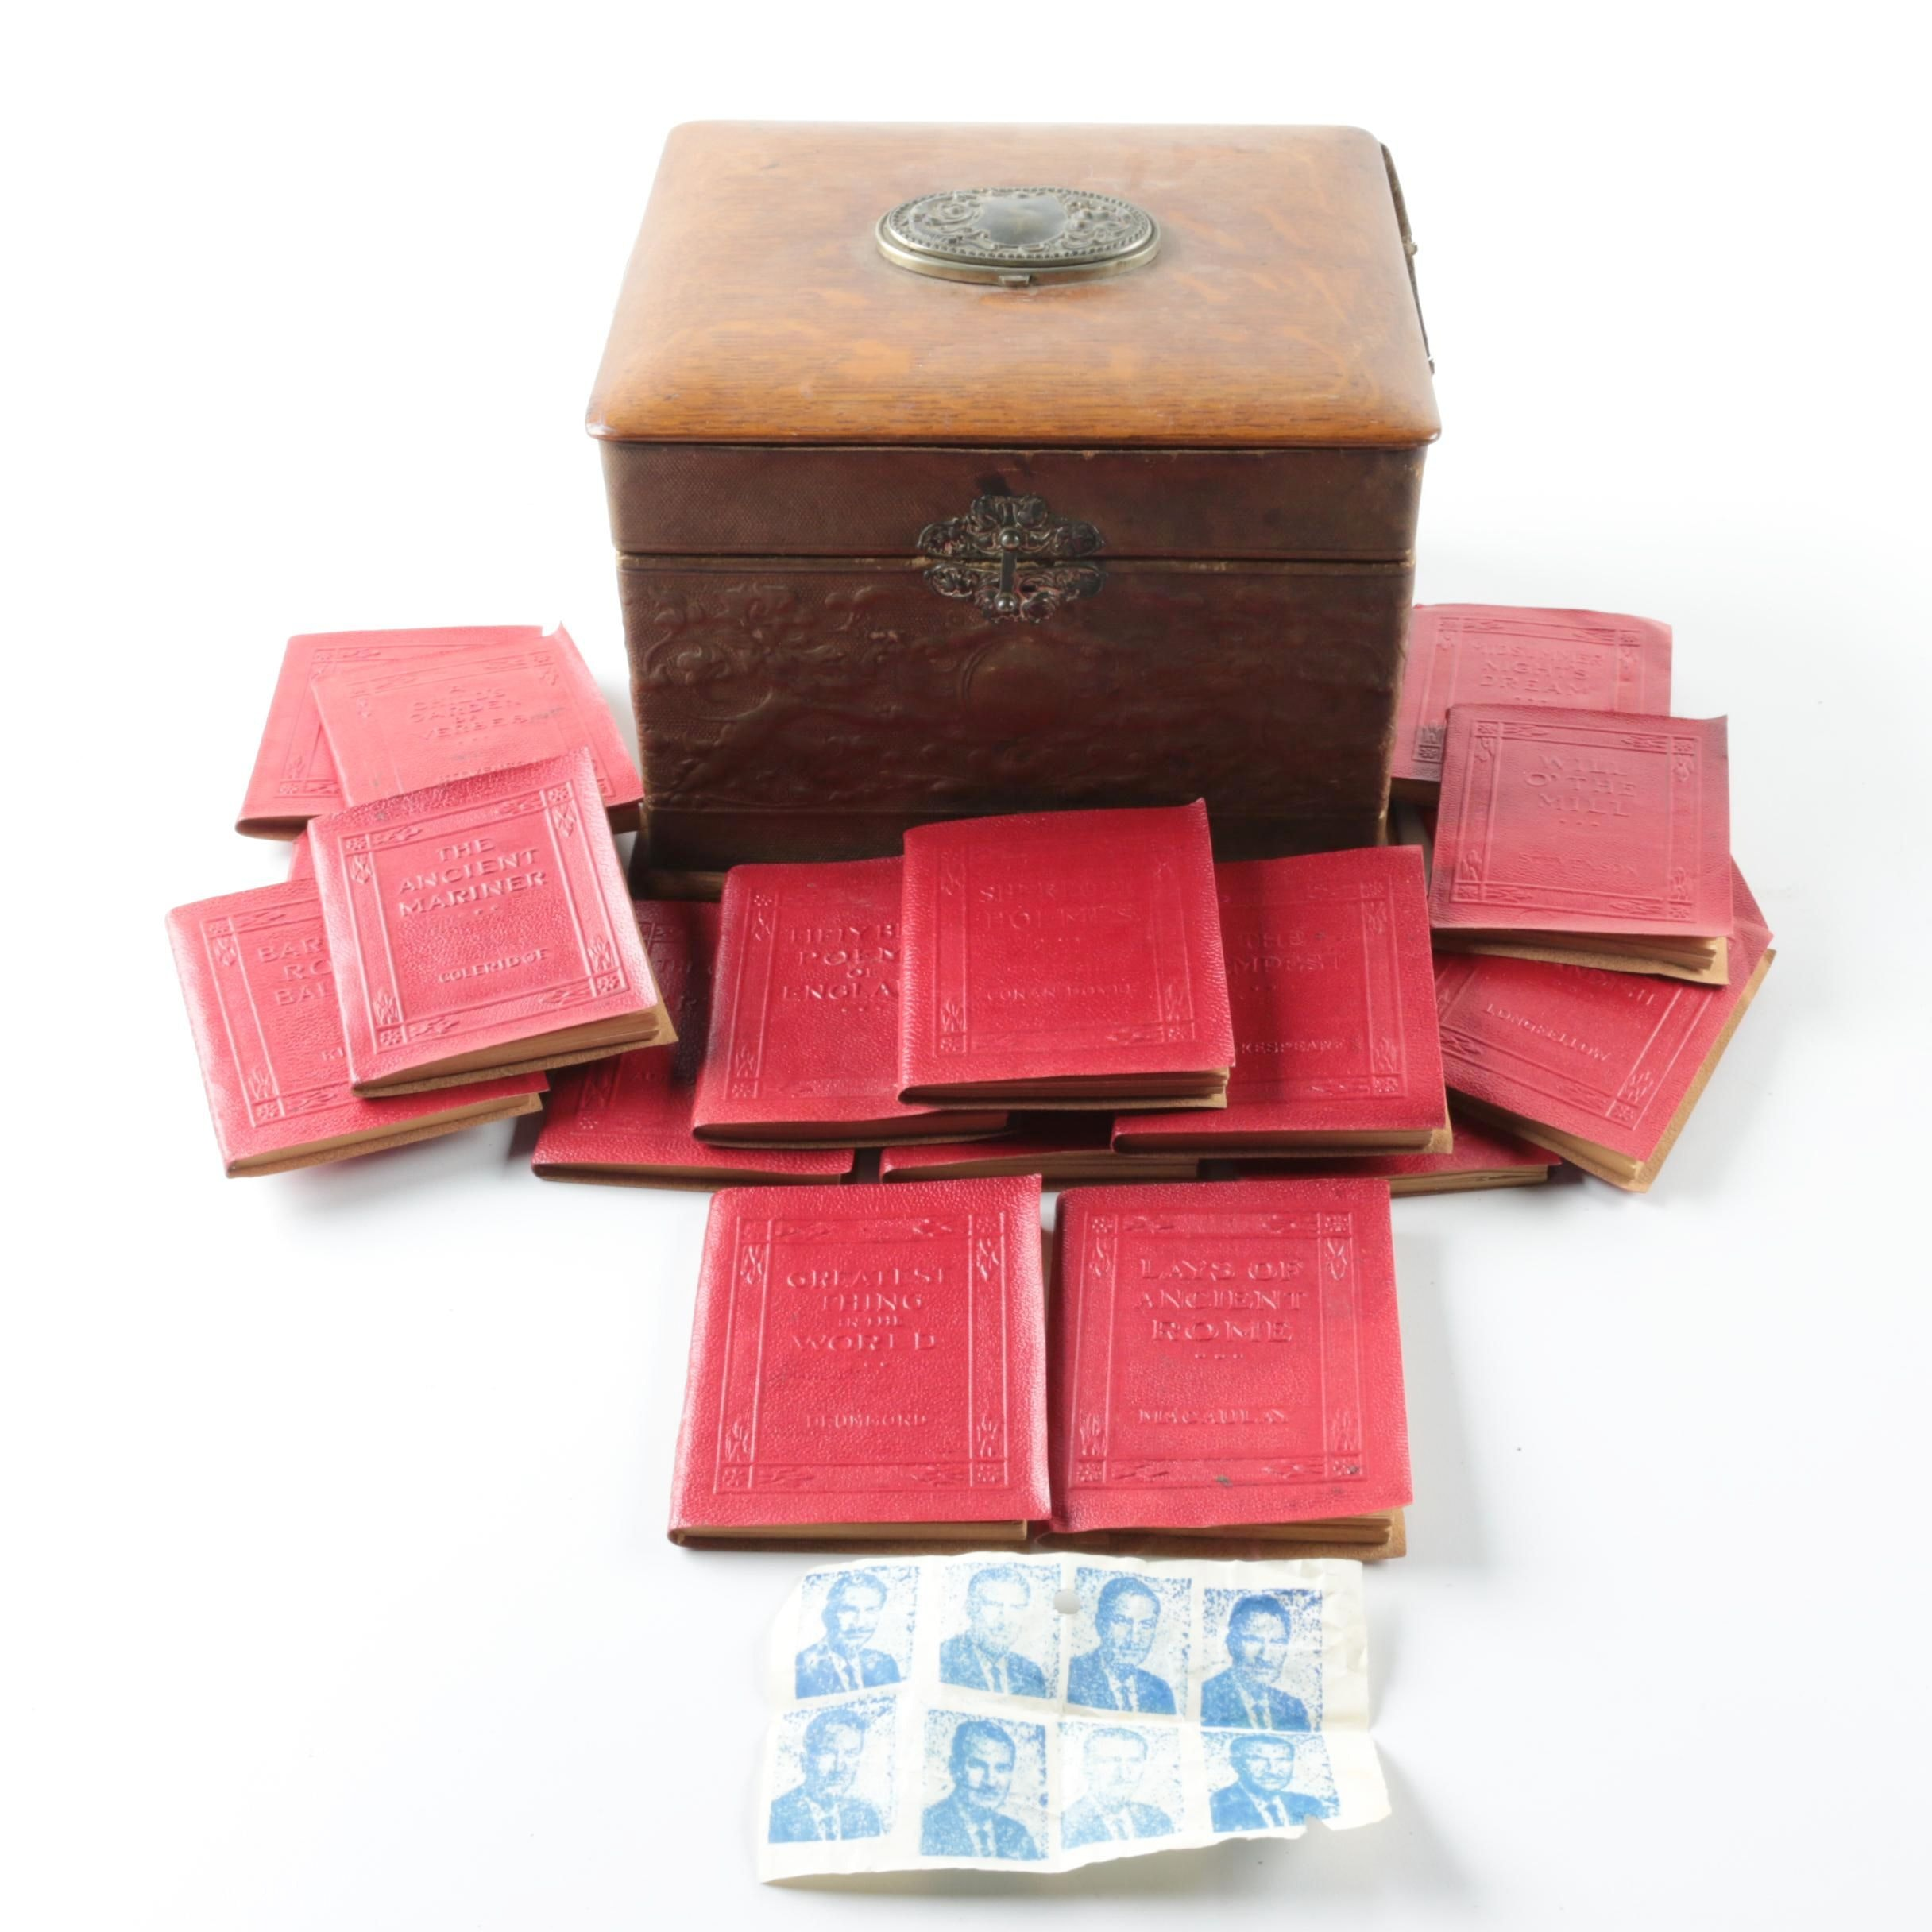 Antique Jewelry Box with Miniature Books